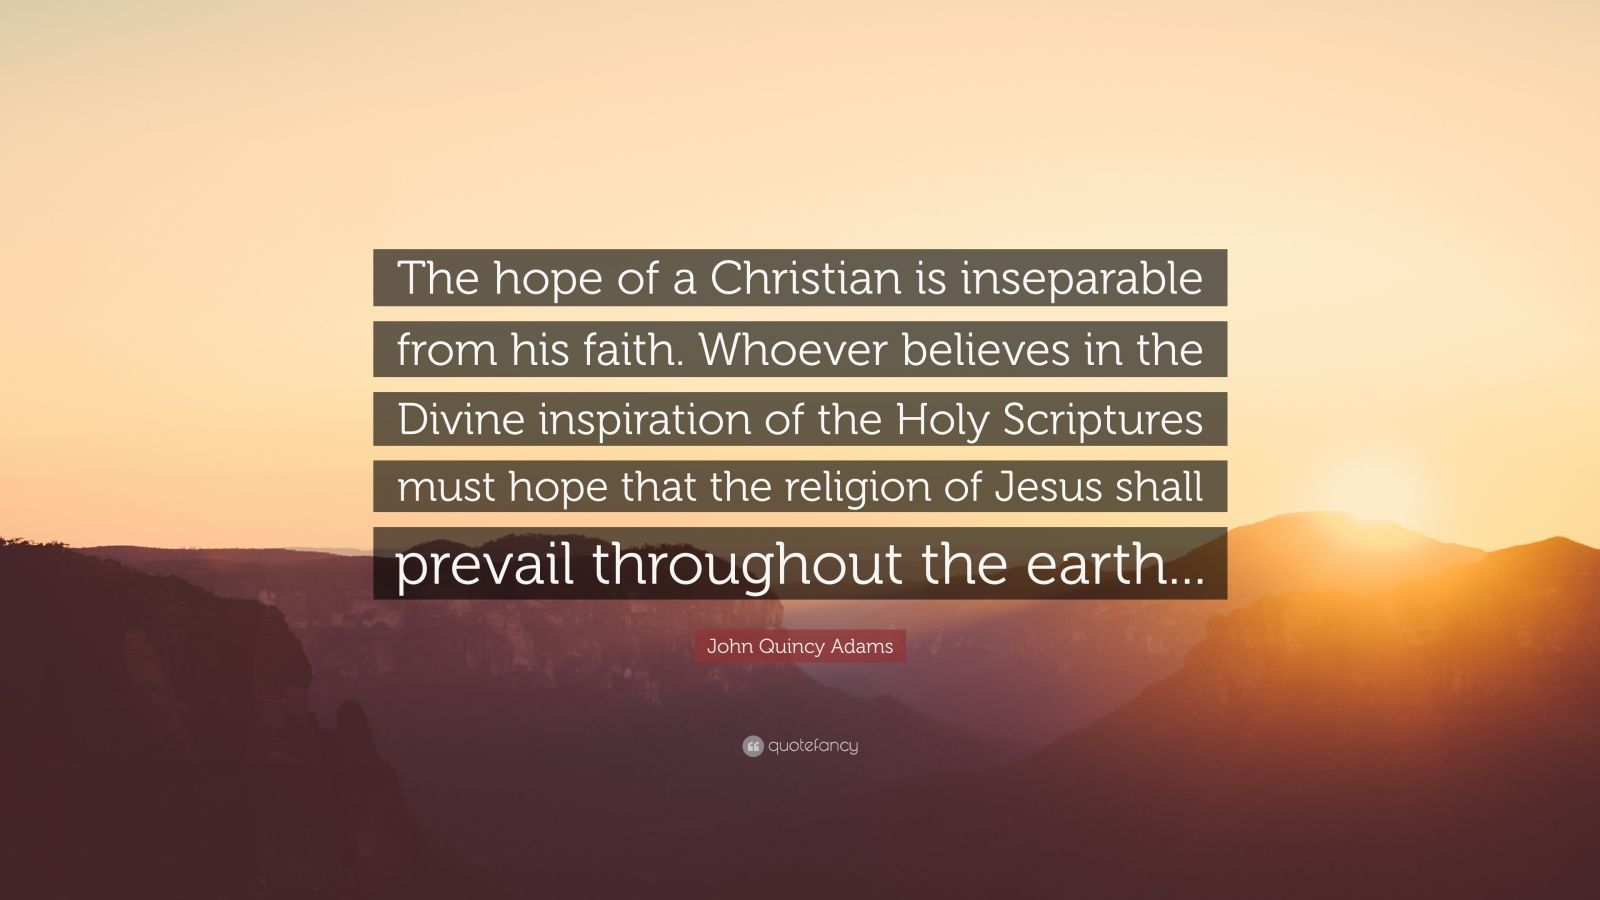 """John Quincy Adams Quote: """"The hope of a Christian is inseparable from his faith. Whoever believes in the Divine inspiration of the Holy Scriptures must hope that the religion of Jesus shall prevail throughout the earth..."""""""